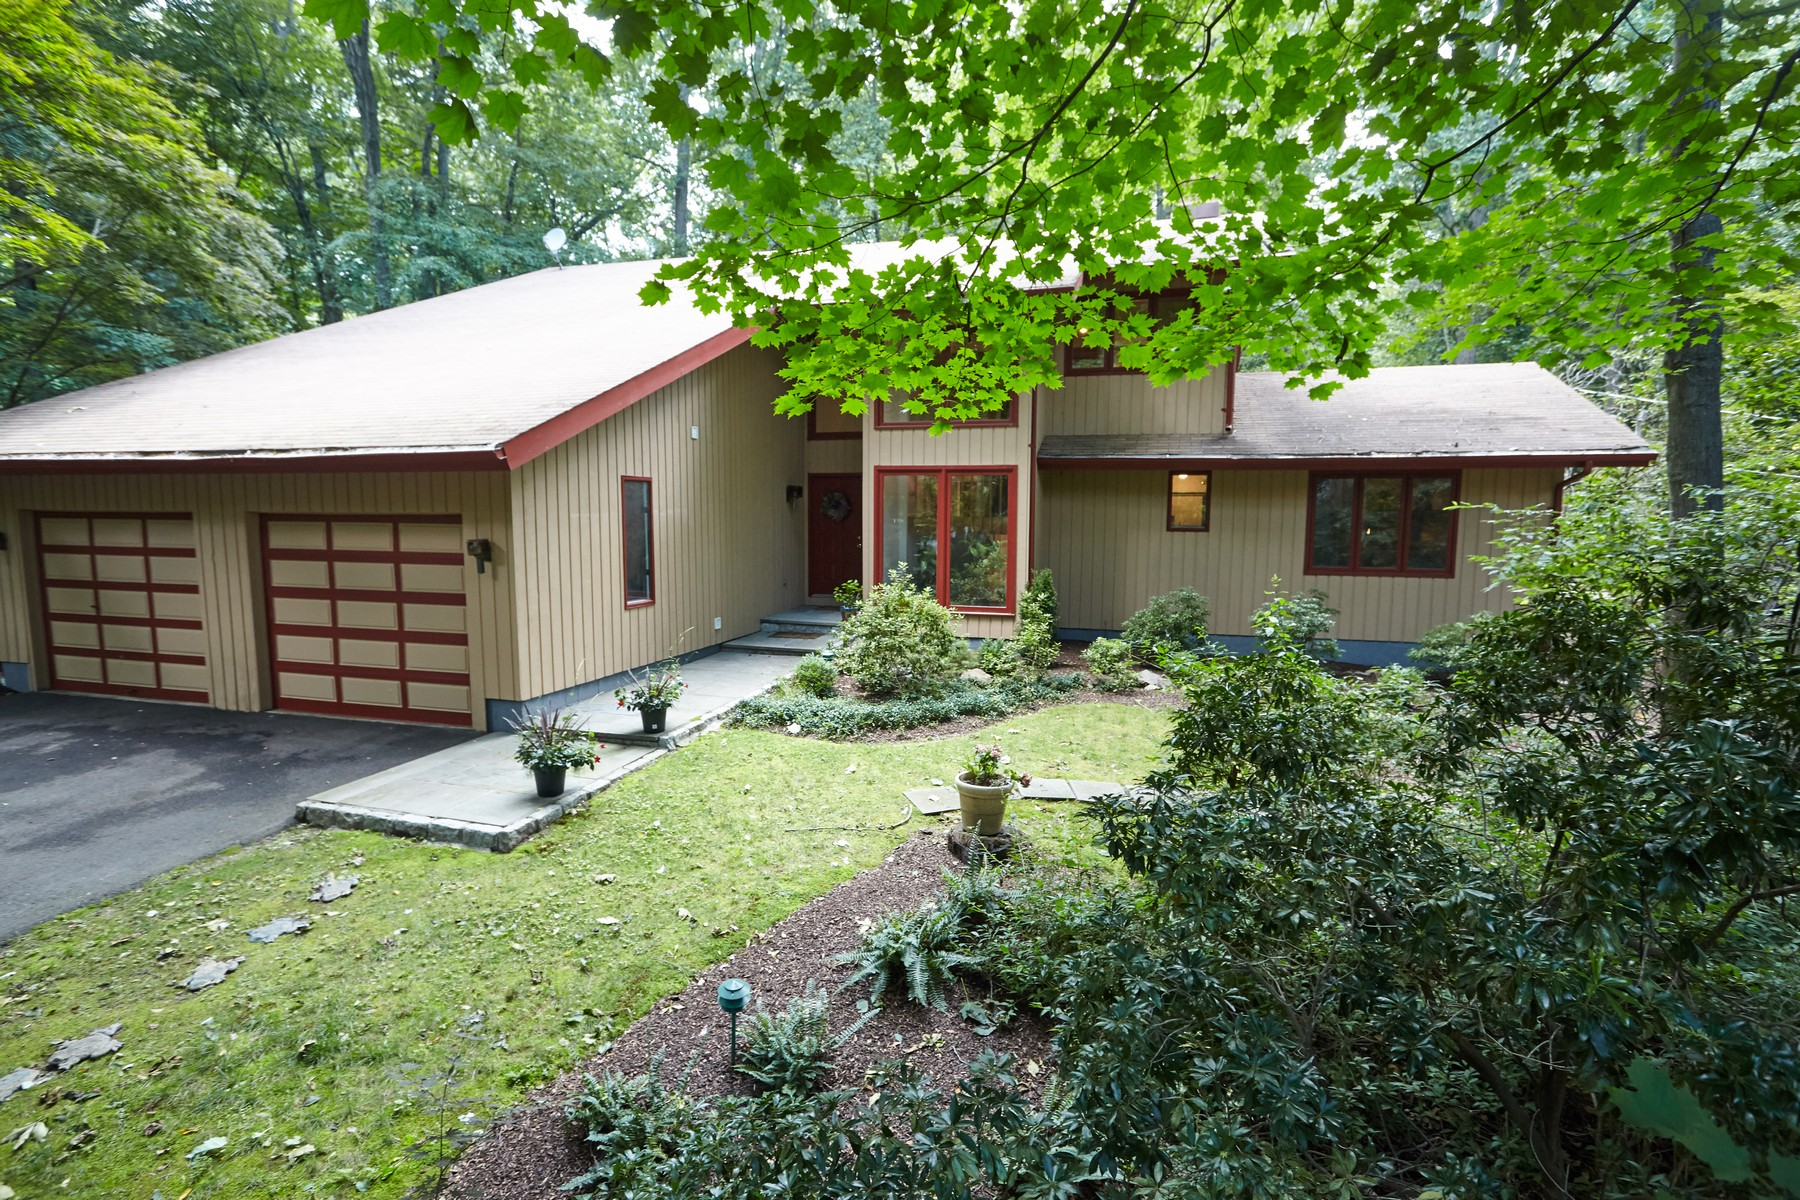 Single Family Home for Sale at Desirable Contemporary 11 Gregory Farm Road Easton, Connecticut 06612 United States